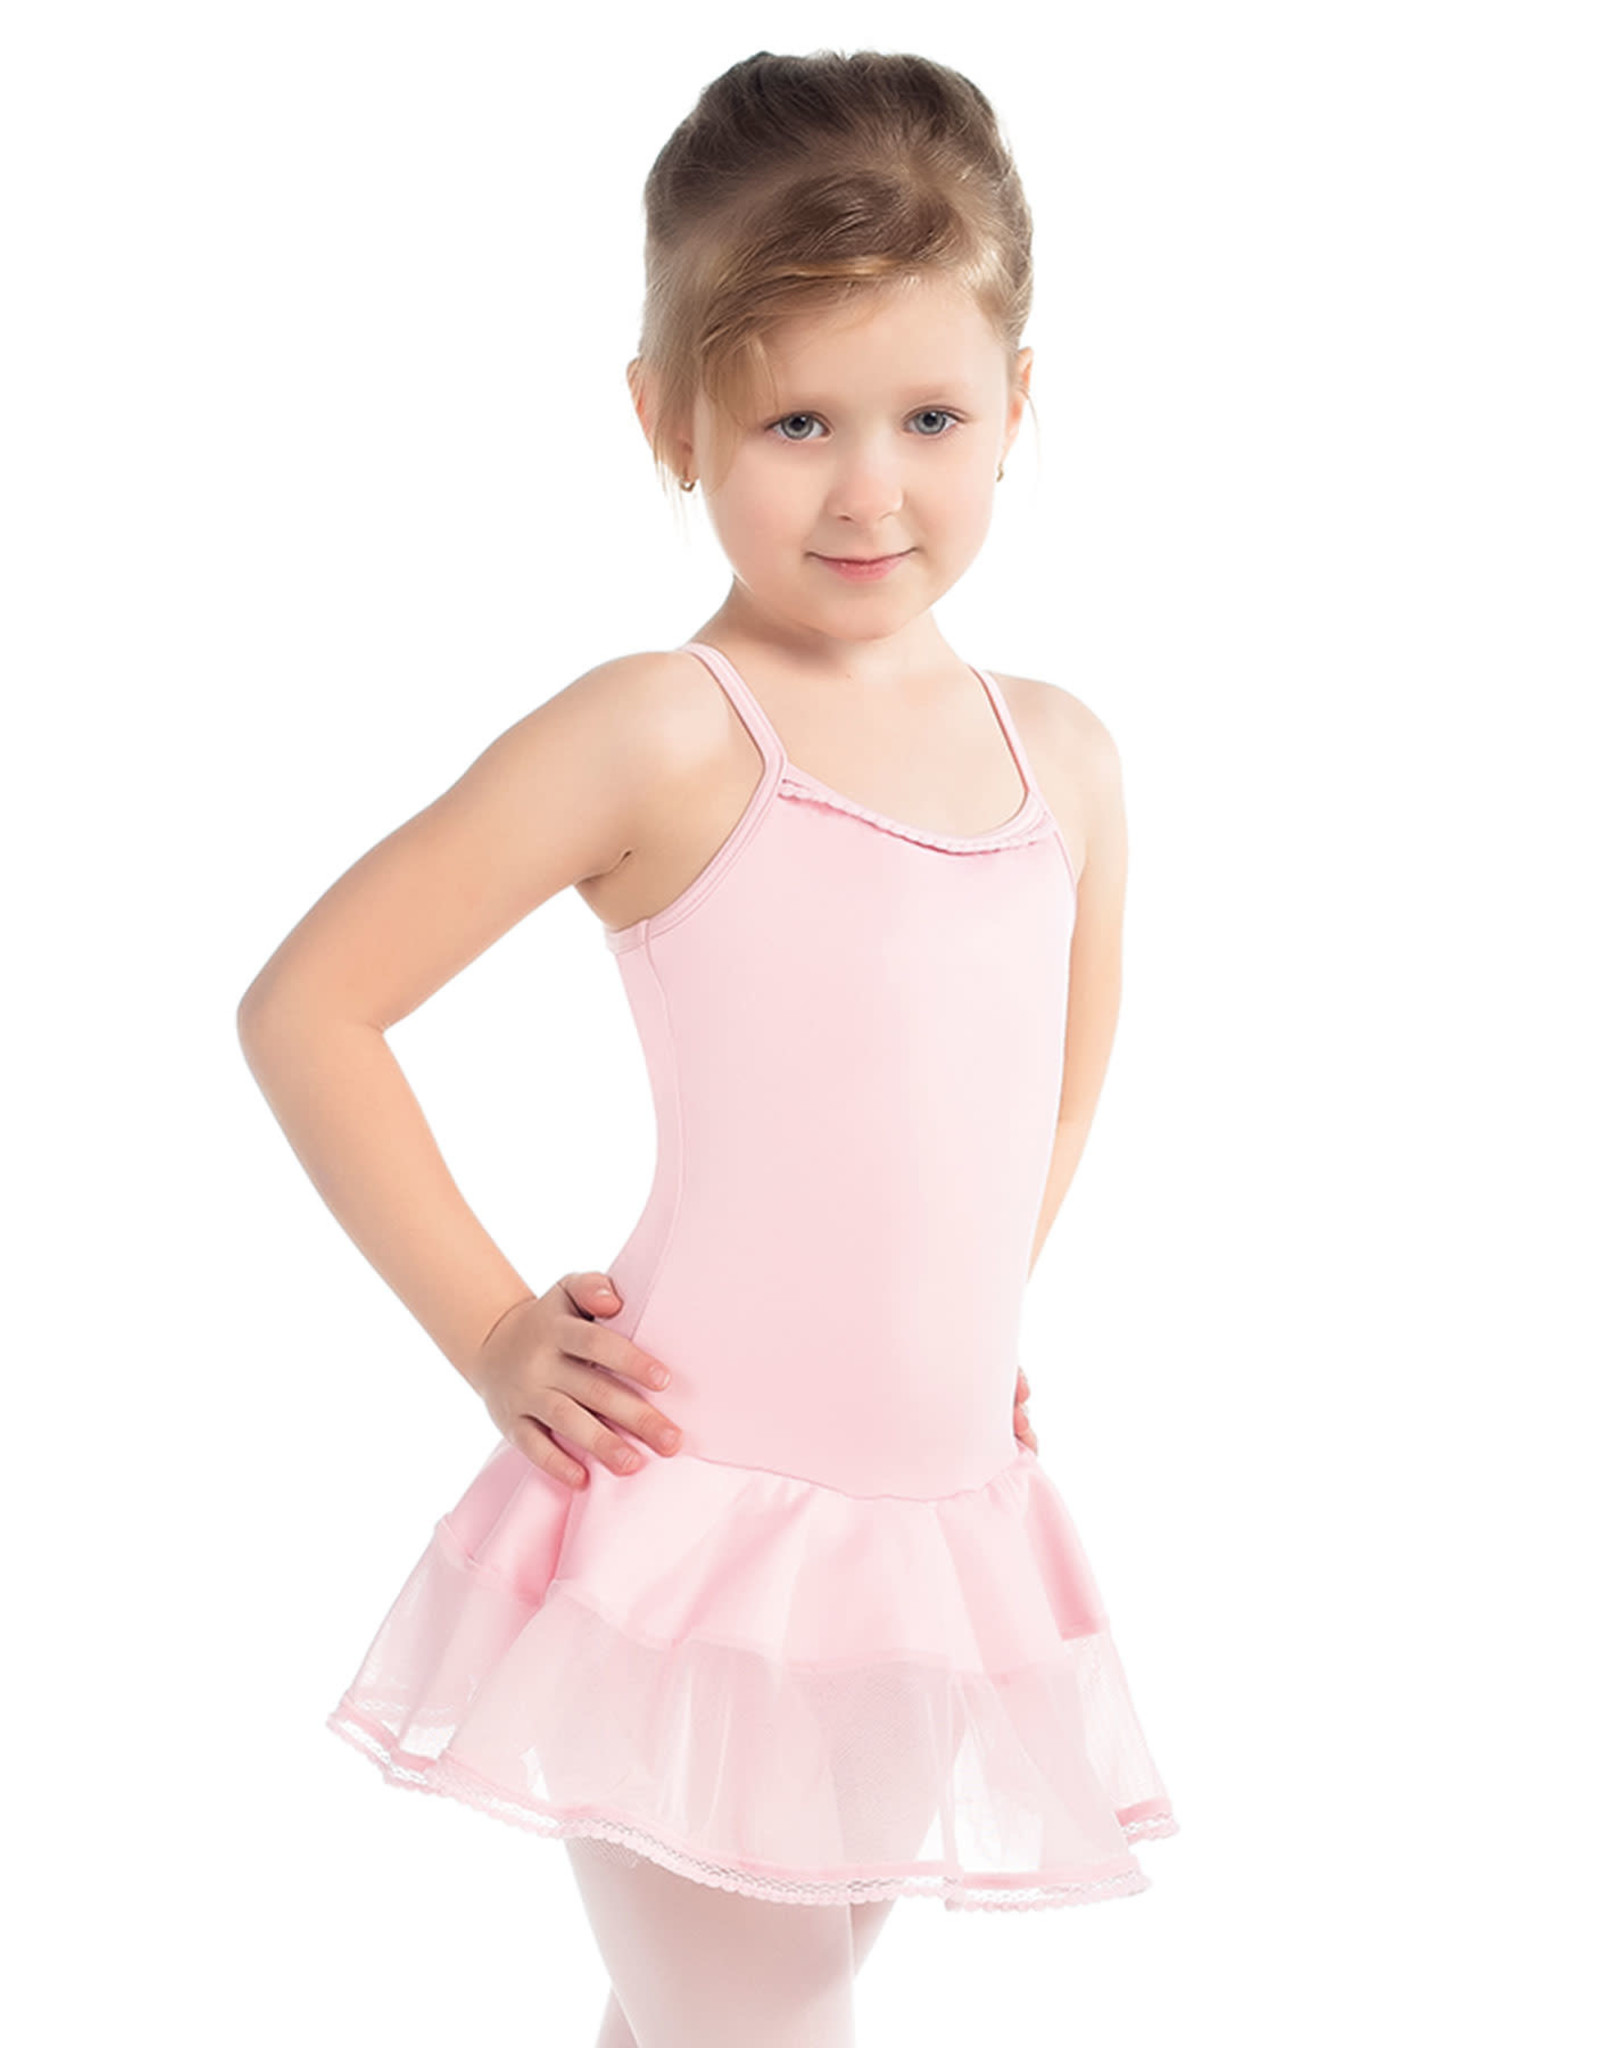 SoDanca sodanca simple pink tutu skirt